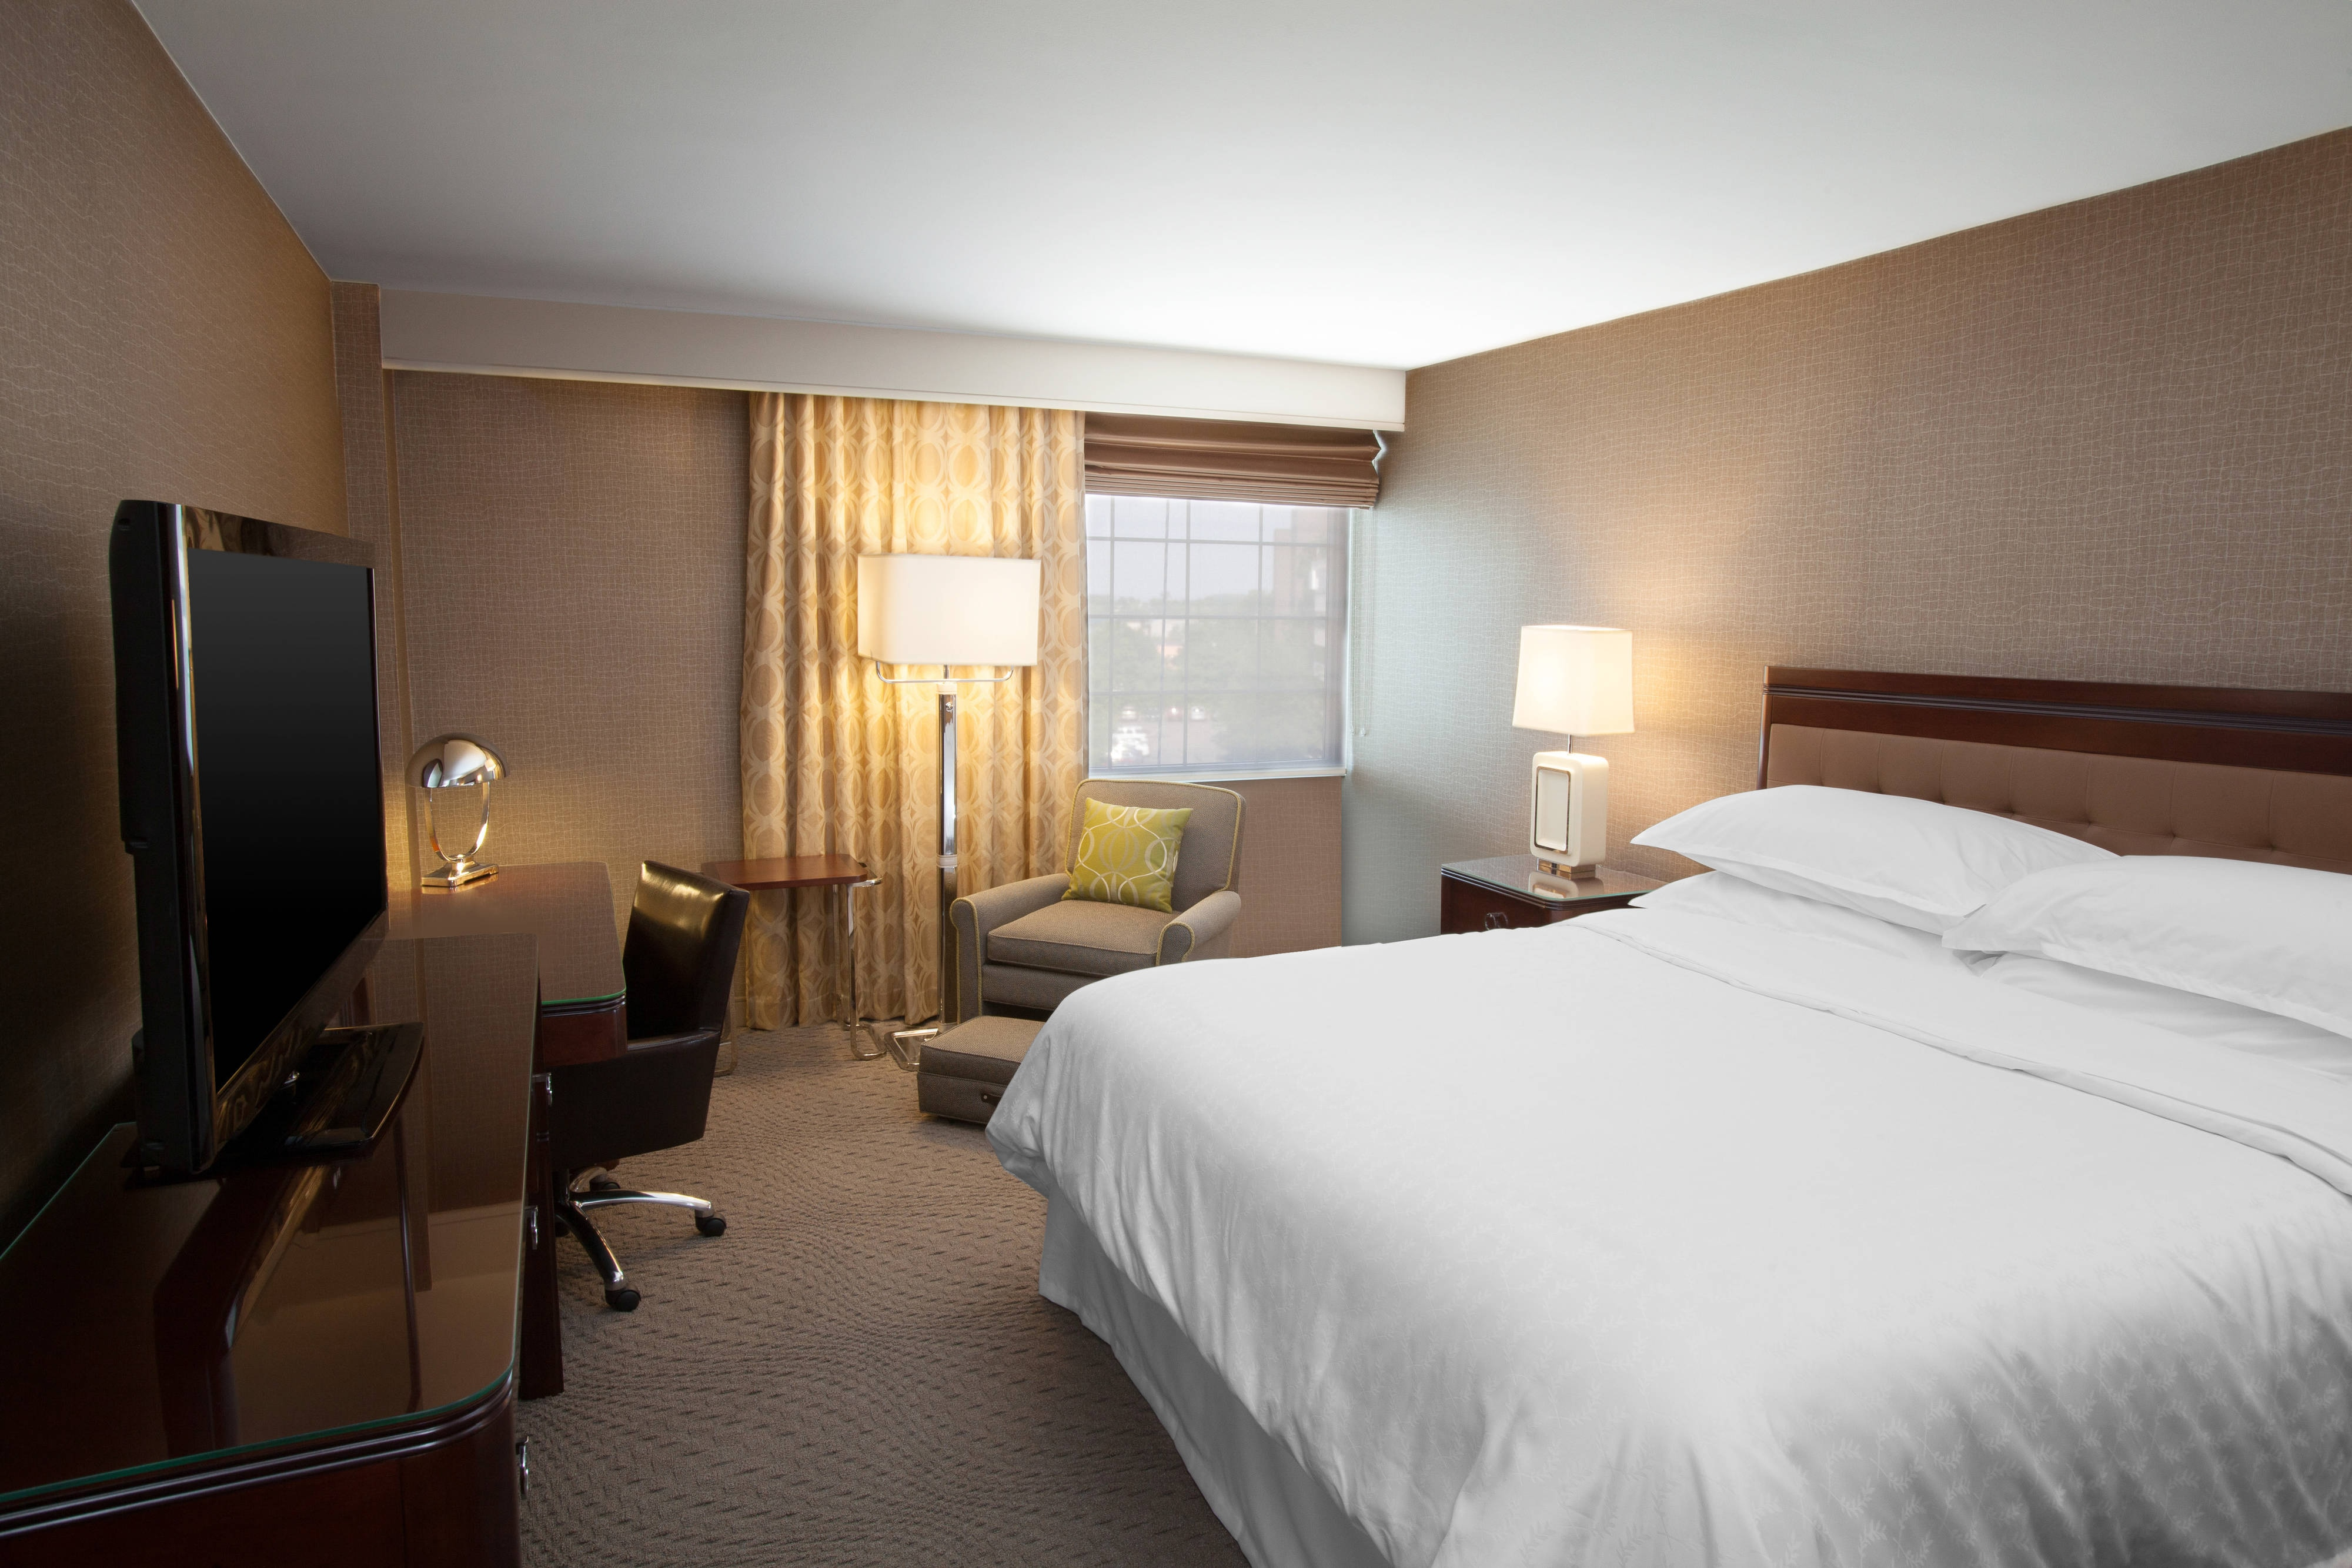 Hotel rooms near pittsburgh airport sheraton pittsburgh airport hotel for 2 bedroom suites in pittsburgh pa